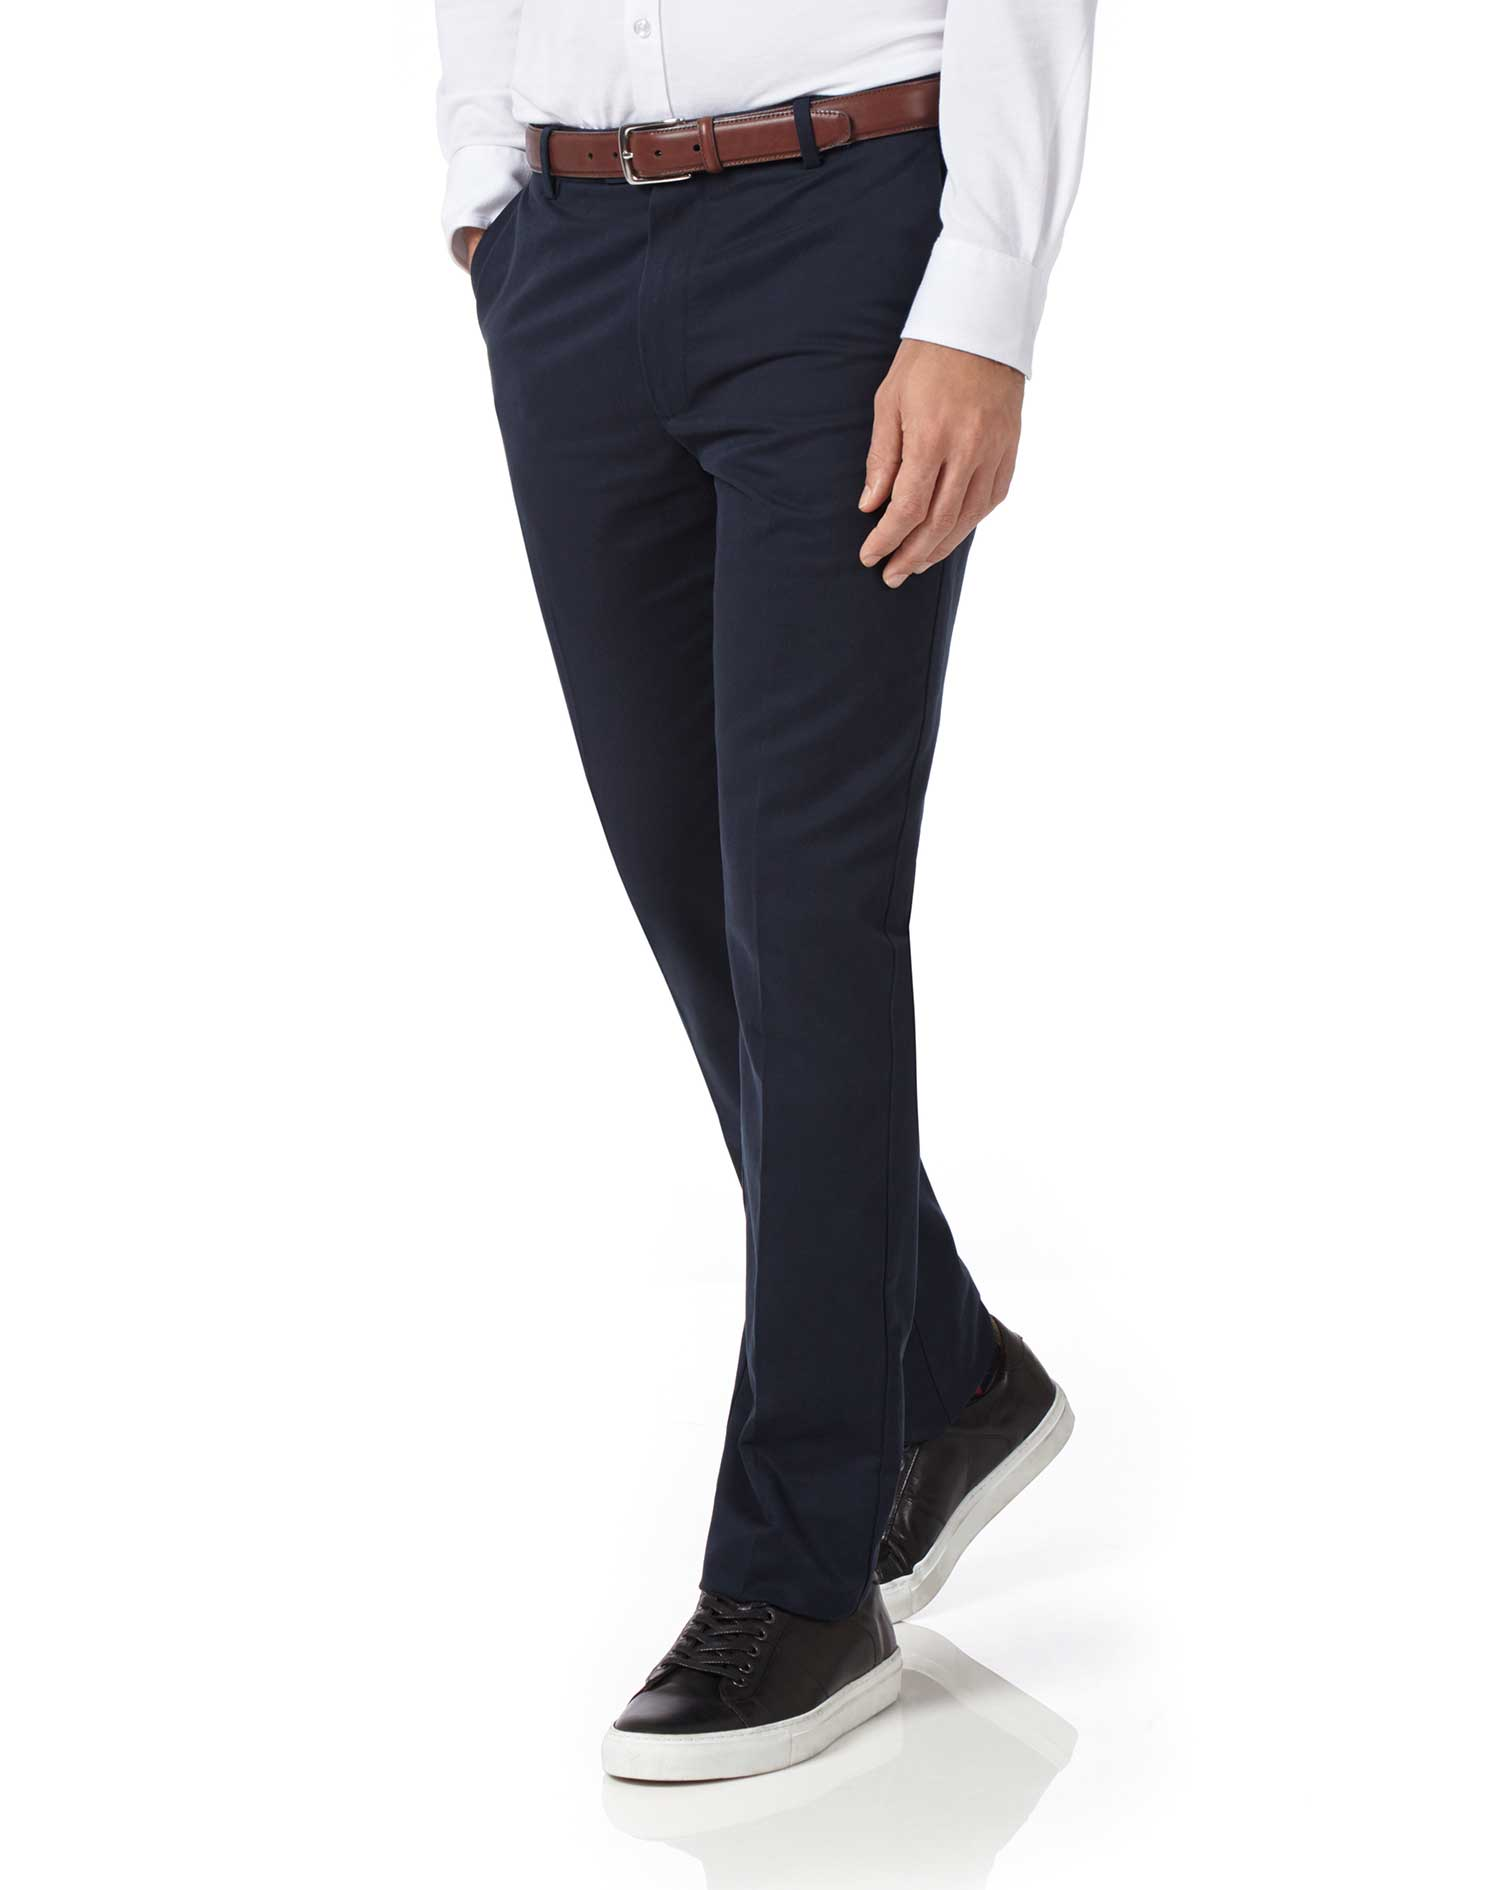 Navy Extra Slim Fit Flat Front Non-Iron Cotton Chino Trousers Size W36 L38 by Charles Tyrwhitt